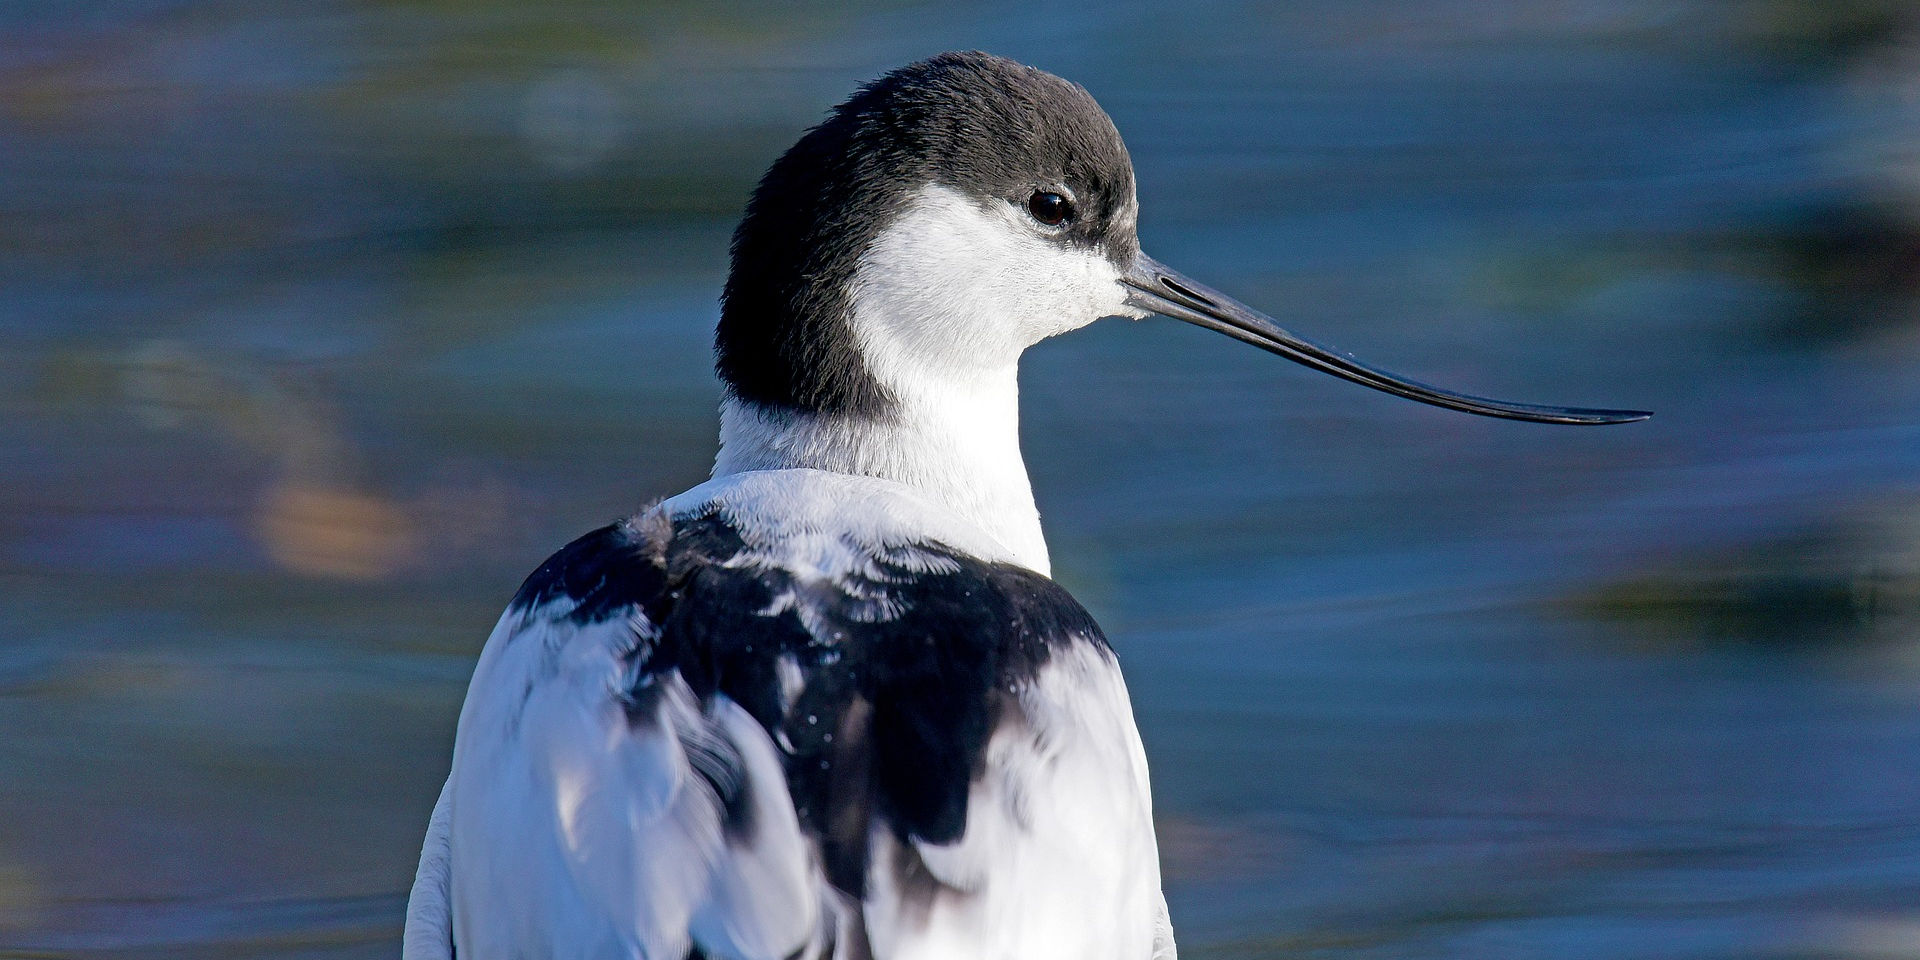 Avocet. Photo credit: Georg_Wietschorke on Pixabay.